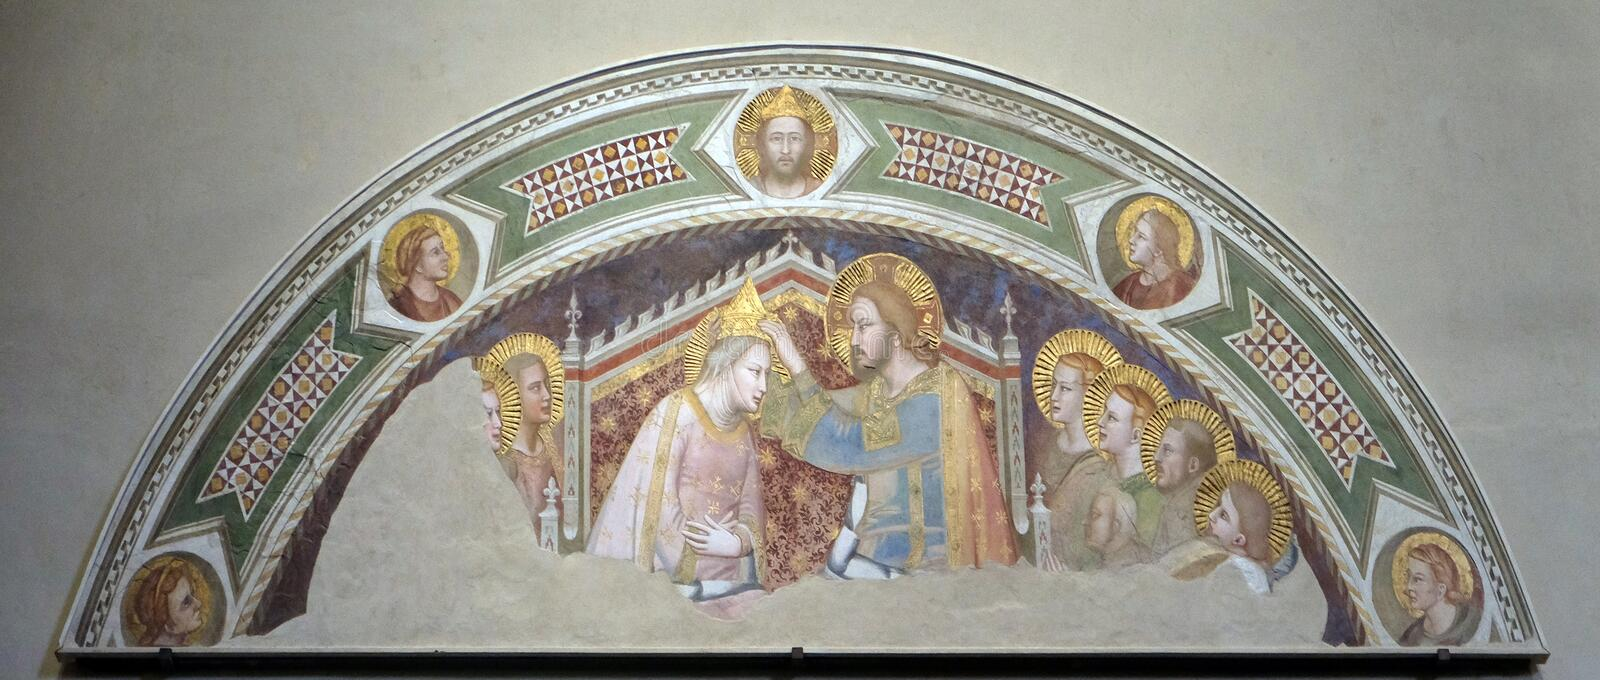 Coronation of the Virgin, Basilica di Santa Croce in Florence stock image